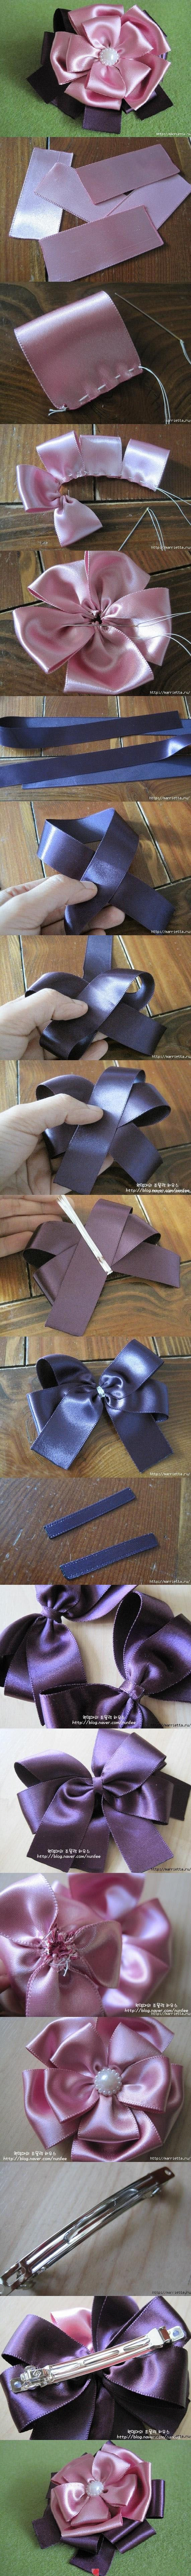 Hair bows, but would make great bows for gift packages.